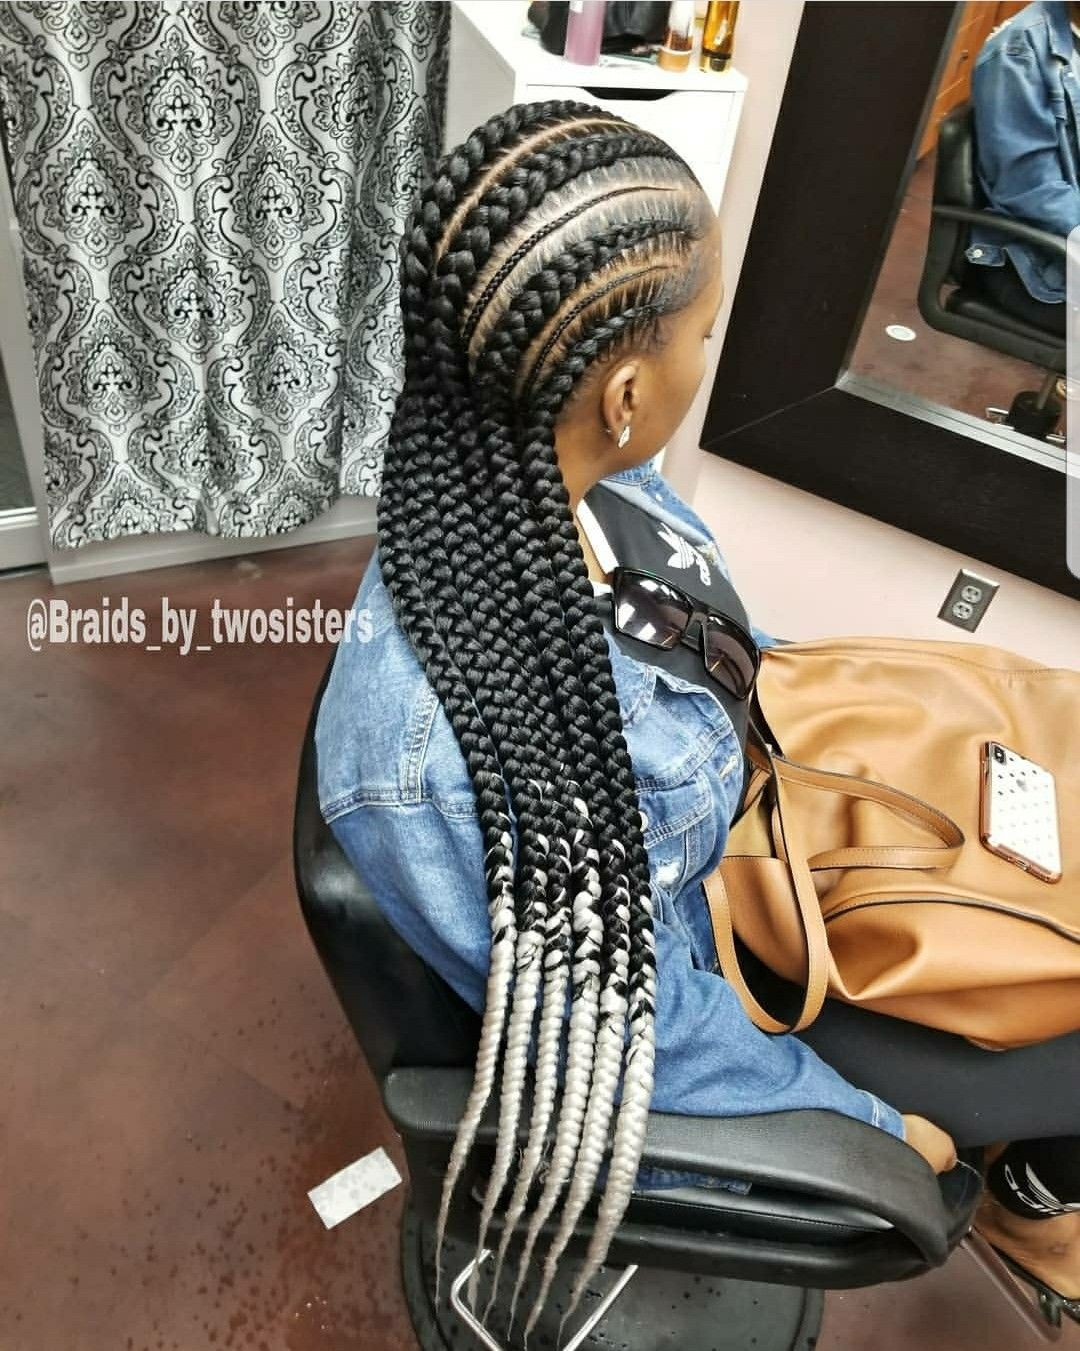 Beautiful Braided Hairstyles 2021 hairstyleforblackwomen.net 16